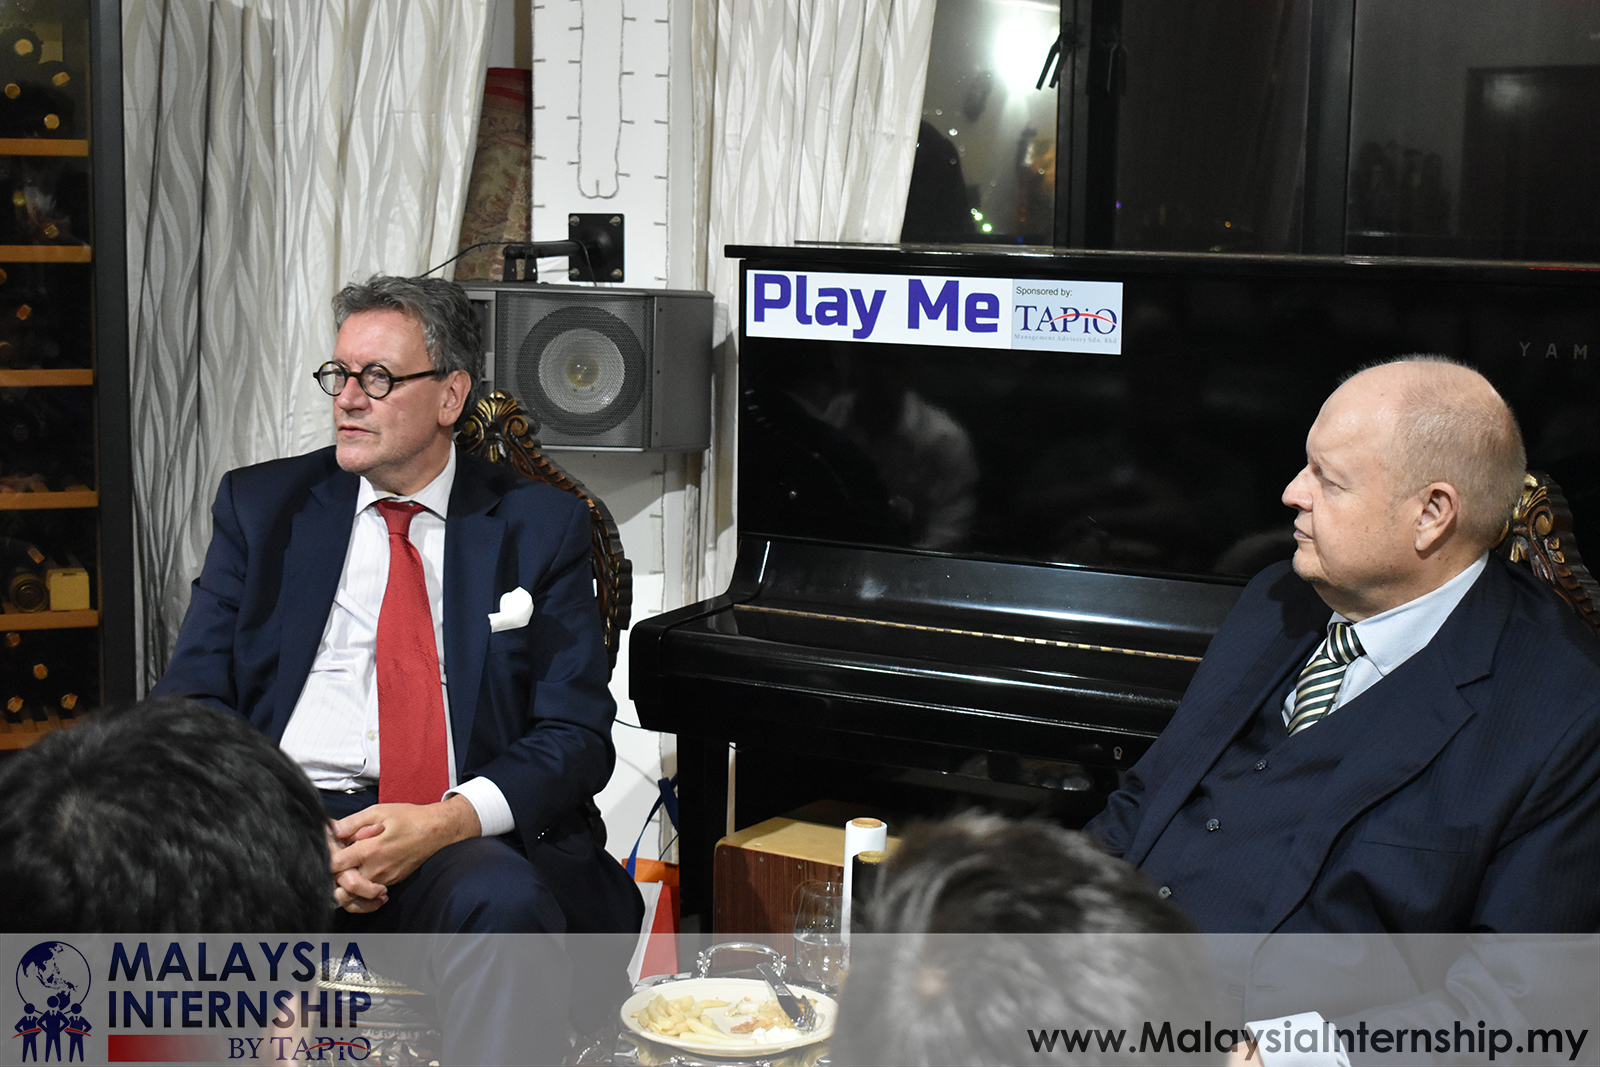 Wednesday Club With HE Pascal Gregoire - 20/02/2019